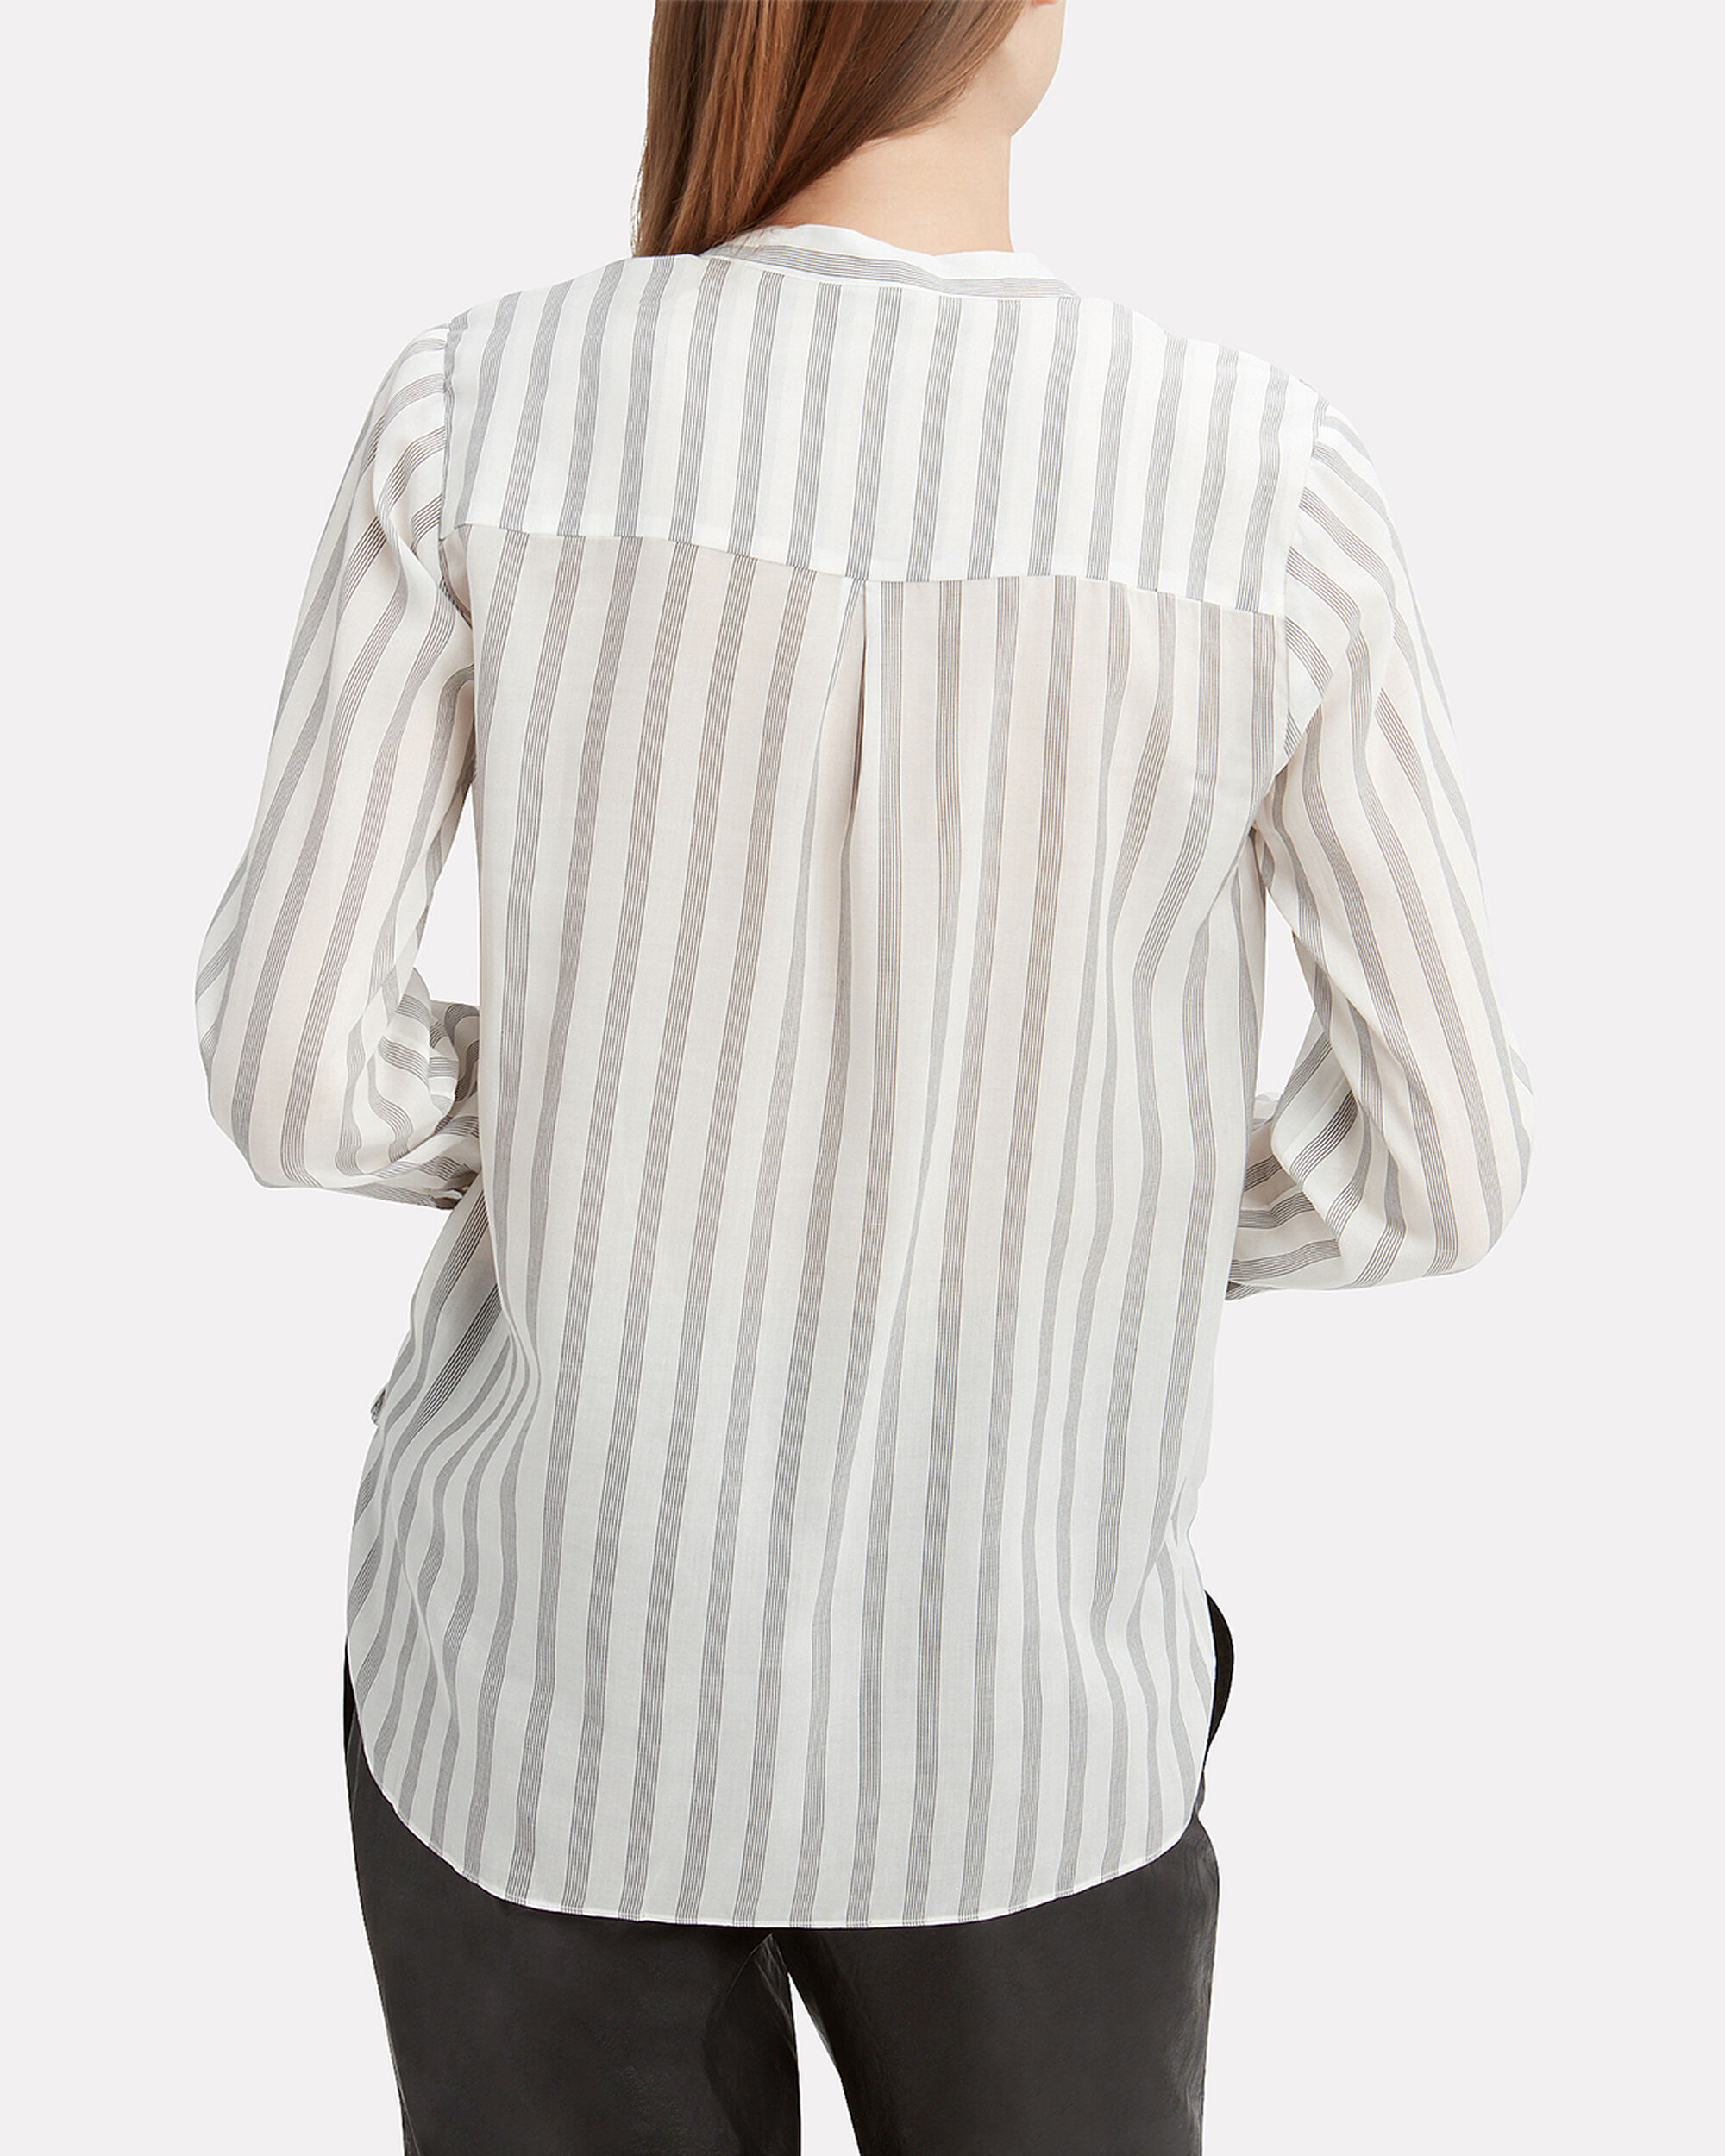 Kyla Drape Front Striped Blouse, BLK/WHT, hi-res